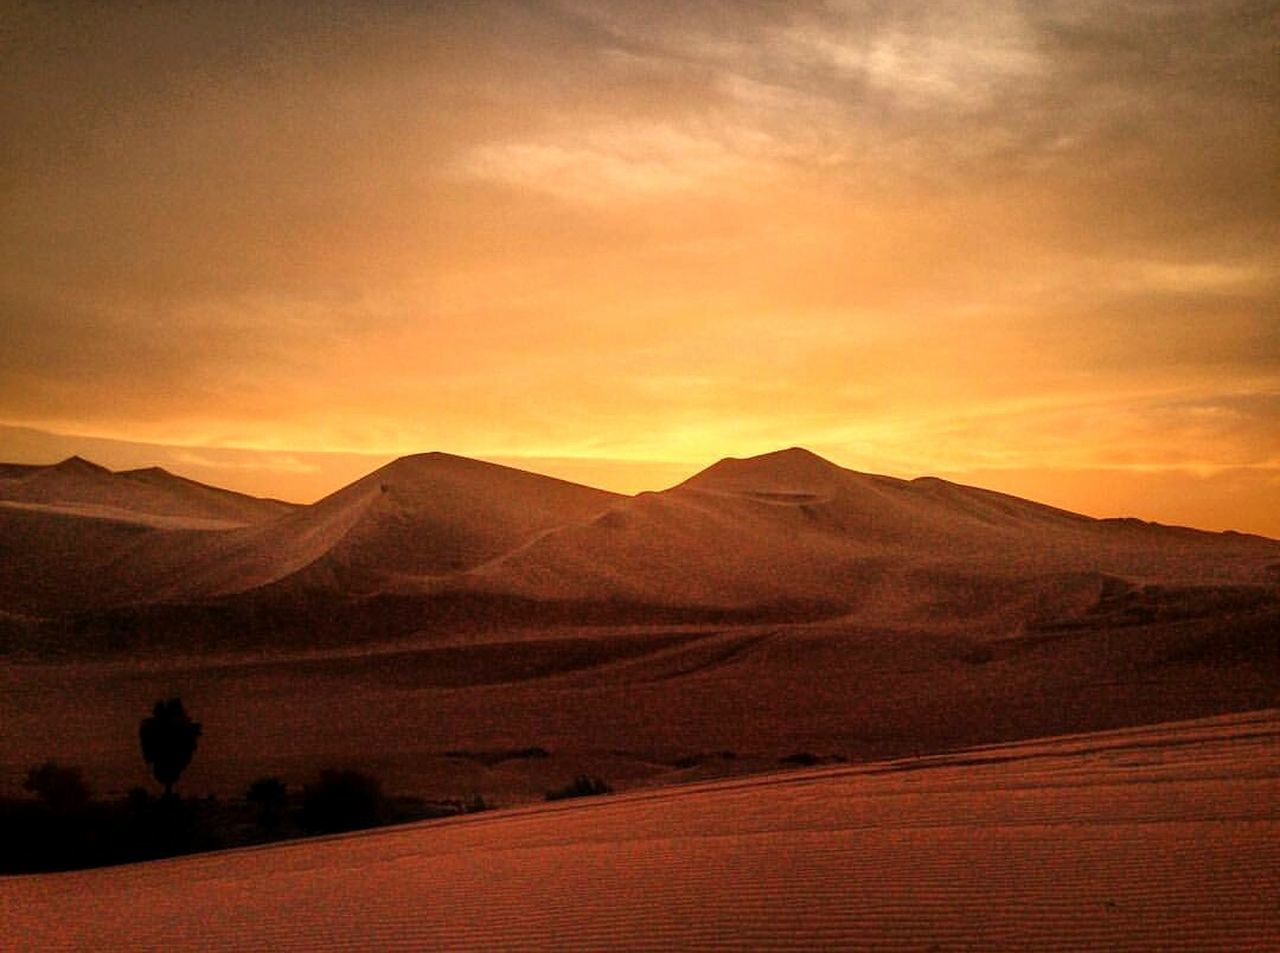 Desert Sunset Mountain Landscape Dusk Orange Color Scenics Outdoors Sand Dune Dramatic Sky Nature No People Sky Beauty In Nature Wonderful_places Peru Perutravel Naturelovers Travel Travel Destinations